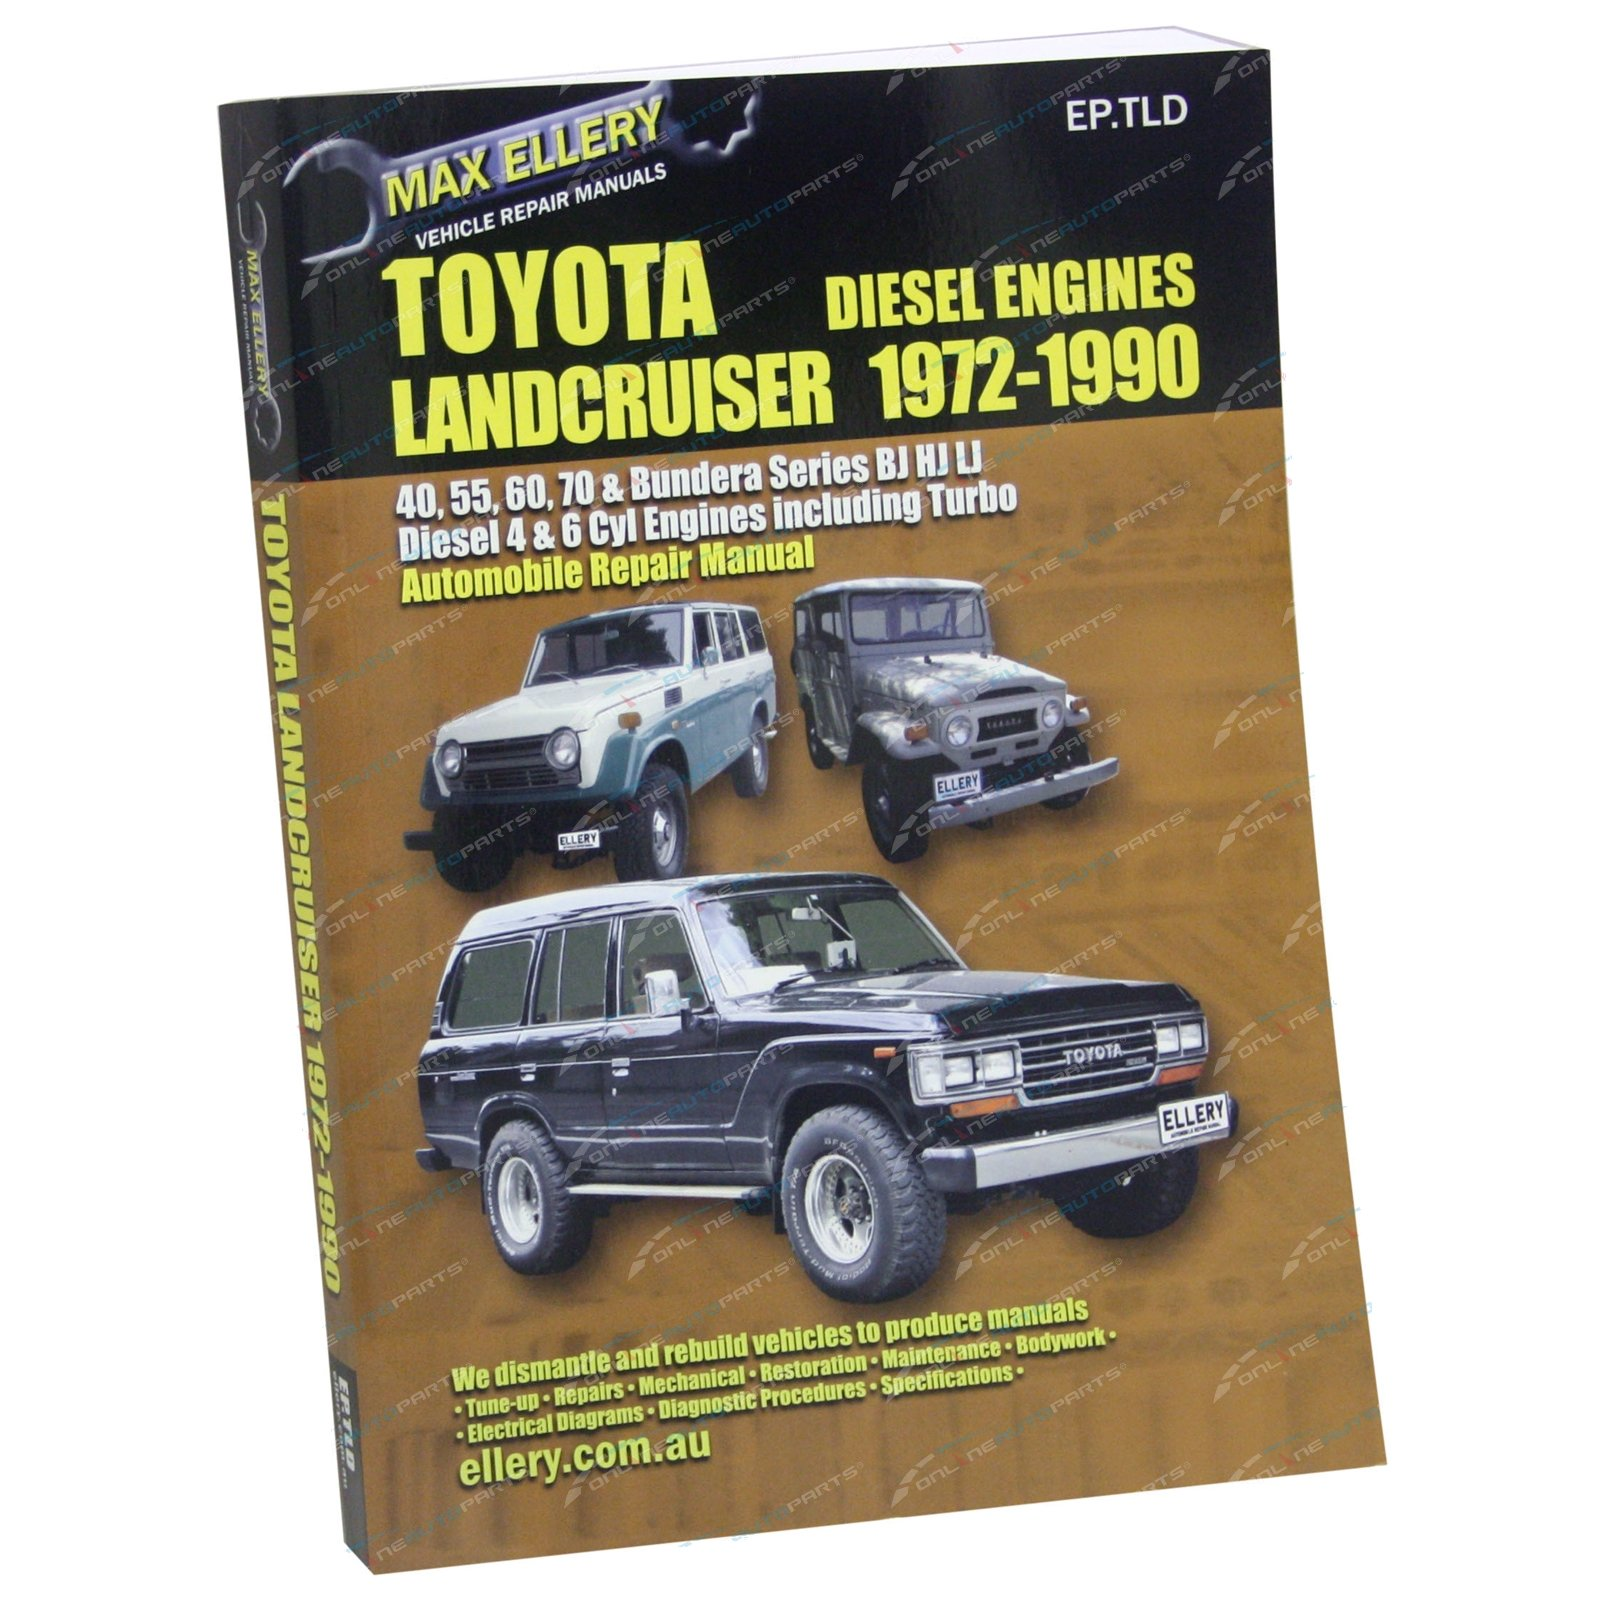 workshop repair manual book suits landcruiser hj45 hj47 hj60 hj61 rh onlineautoparts com au 2000 Toyota Land Cruiser 1970 Toyota Land Cruiser